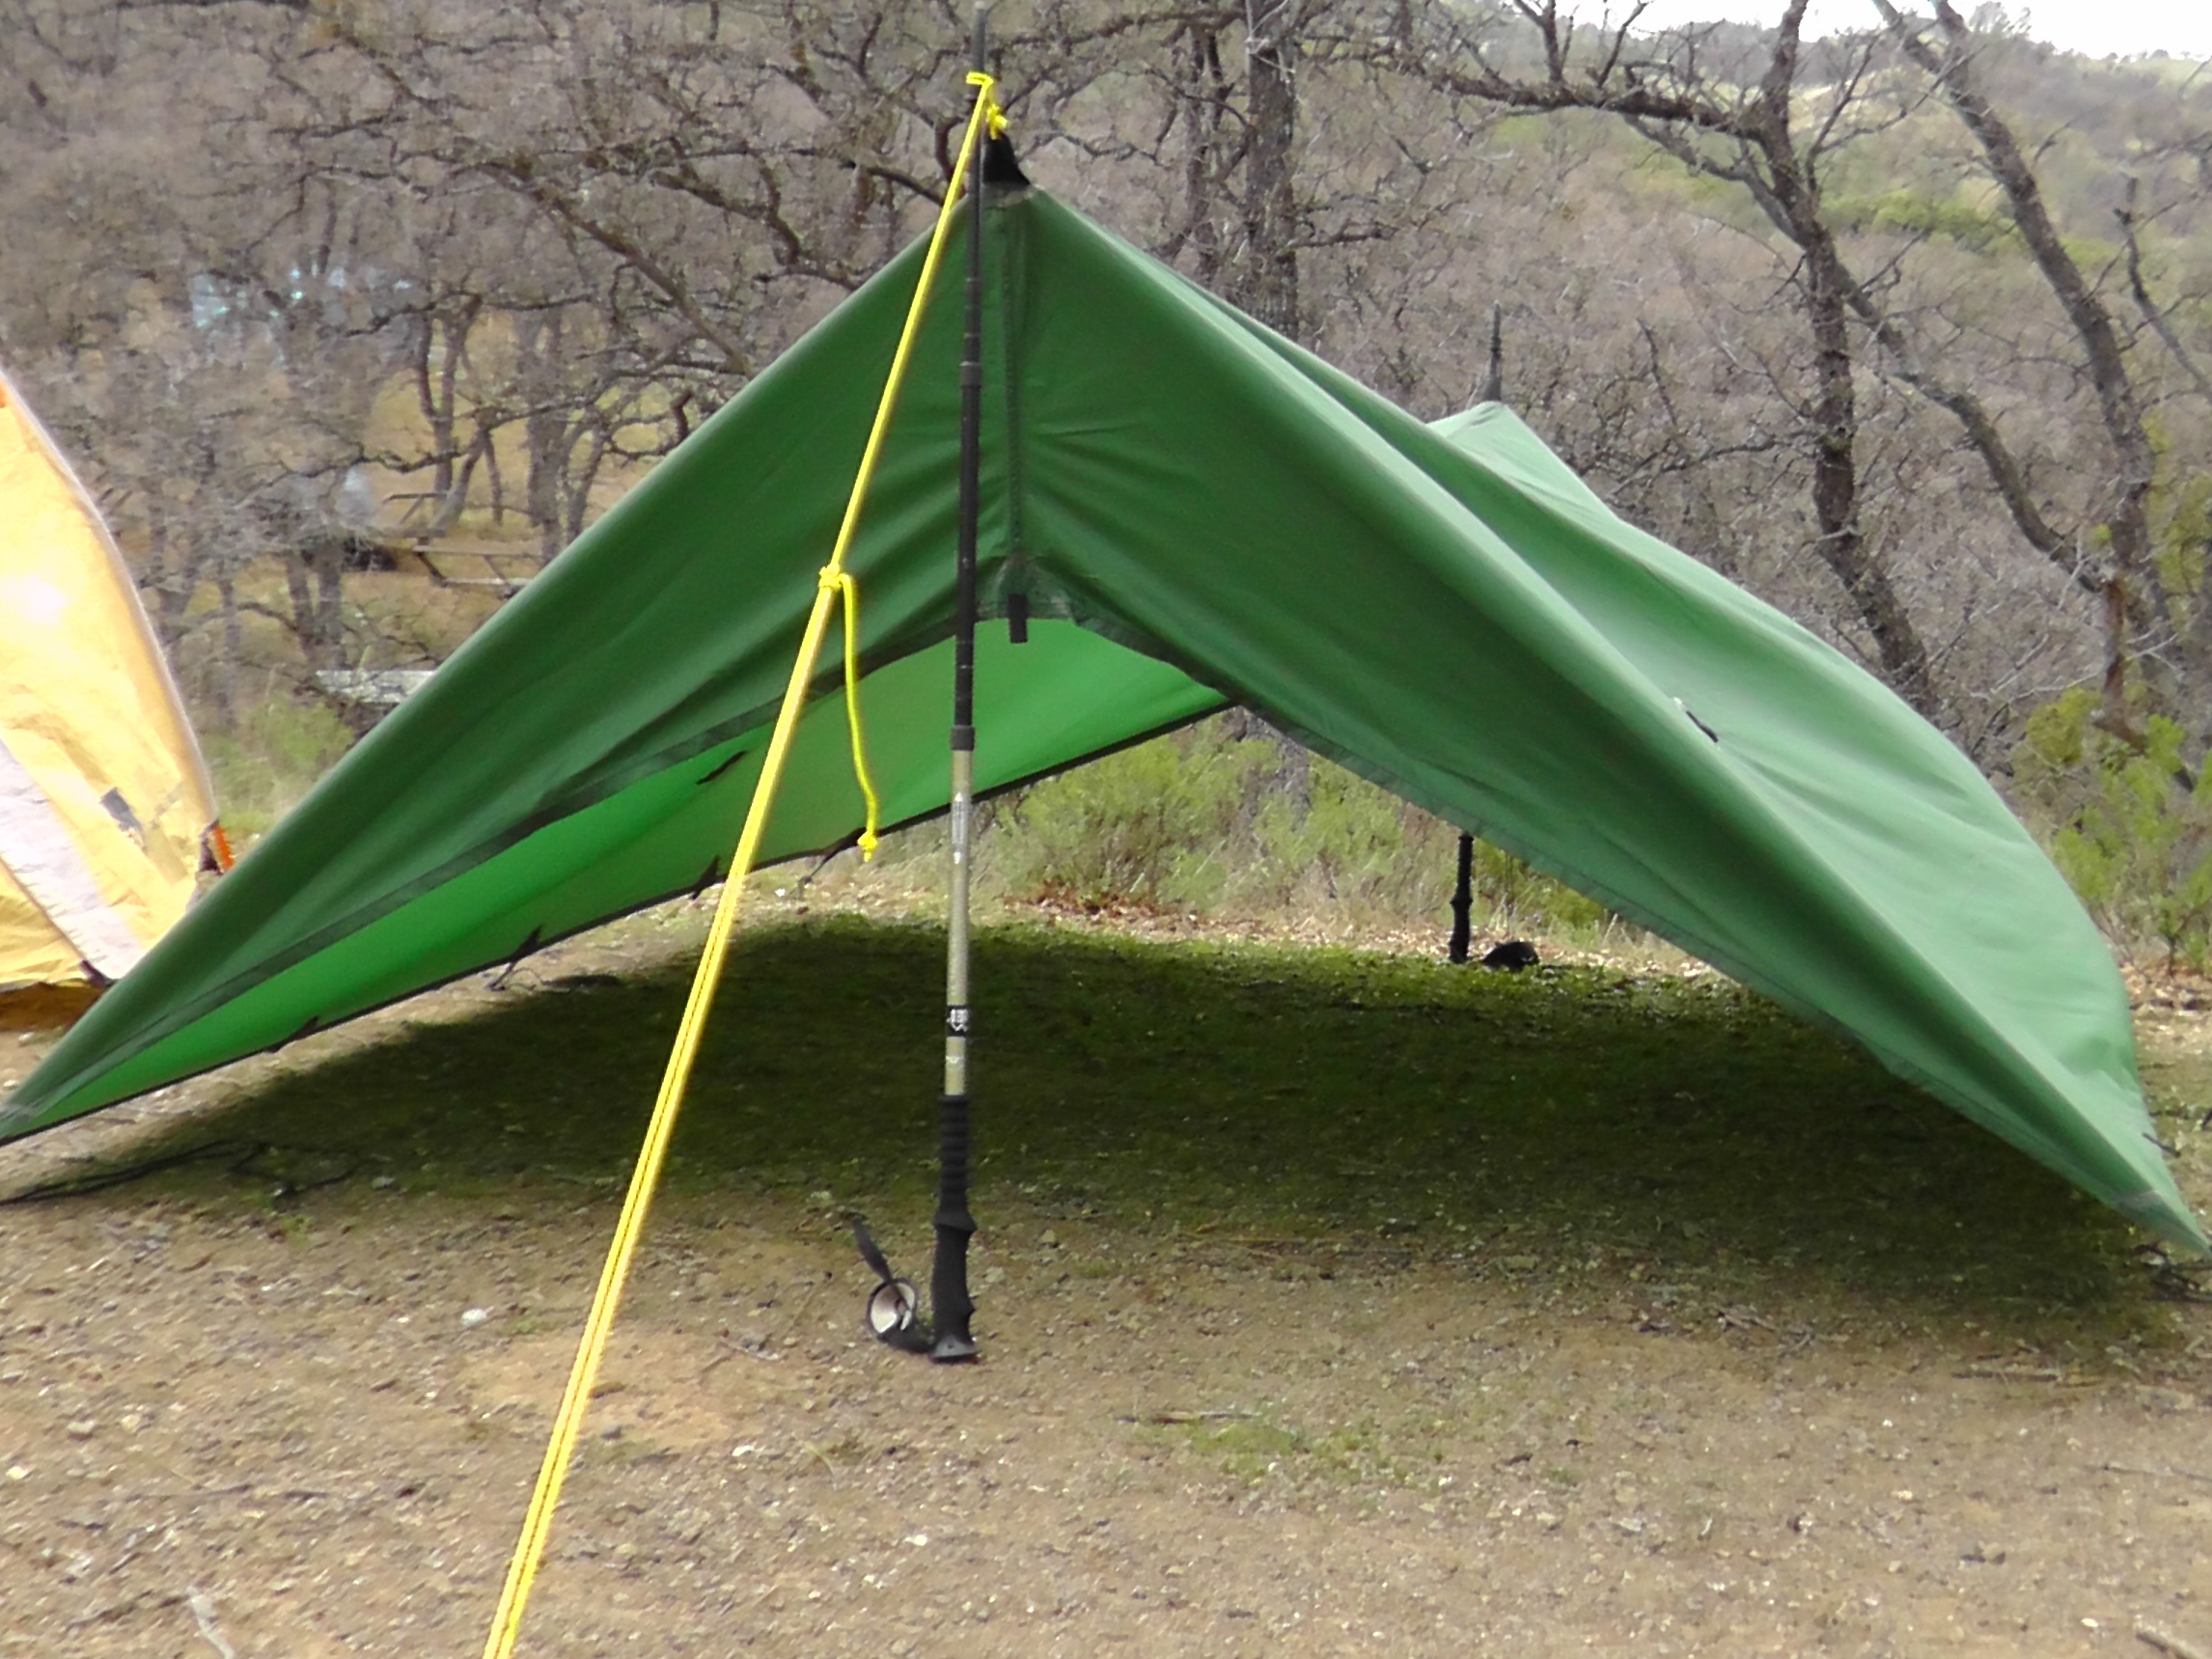 Rain Fly Only - Shelter & How to Pitch a Tent | HowToWilderness.com ™